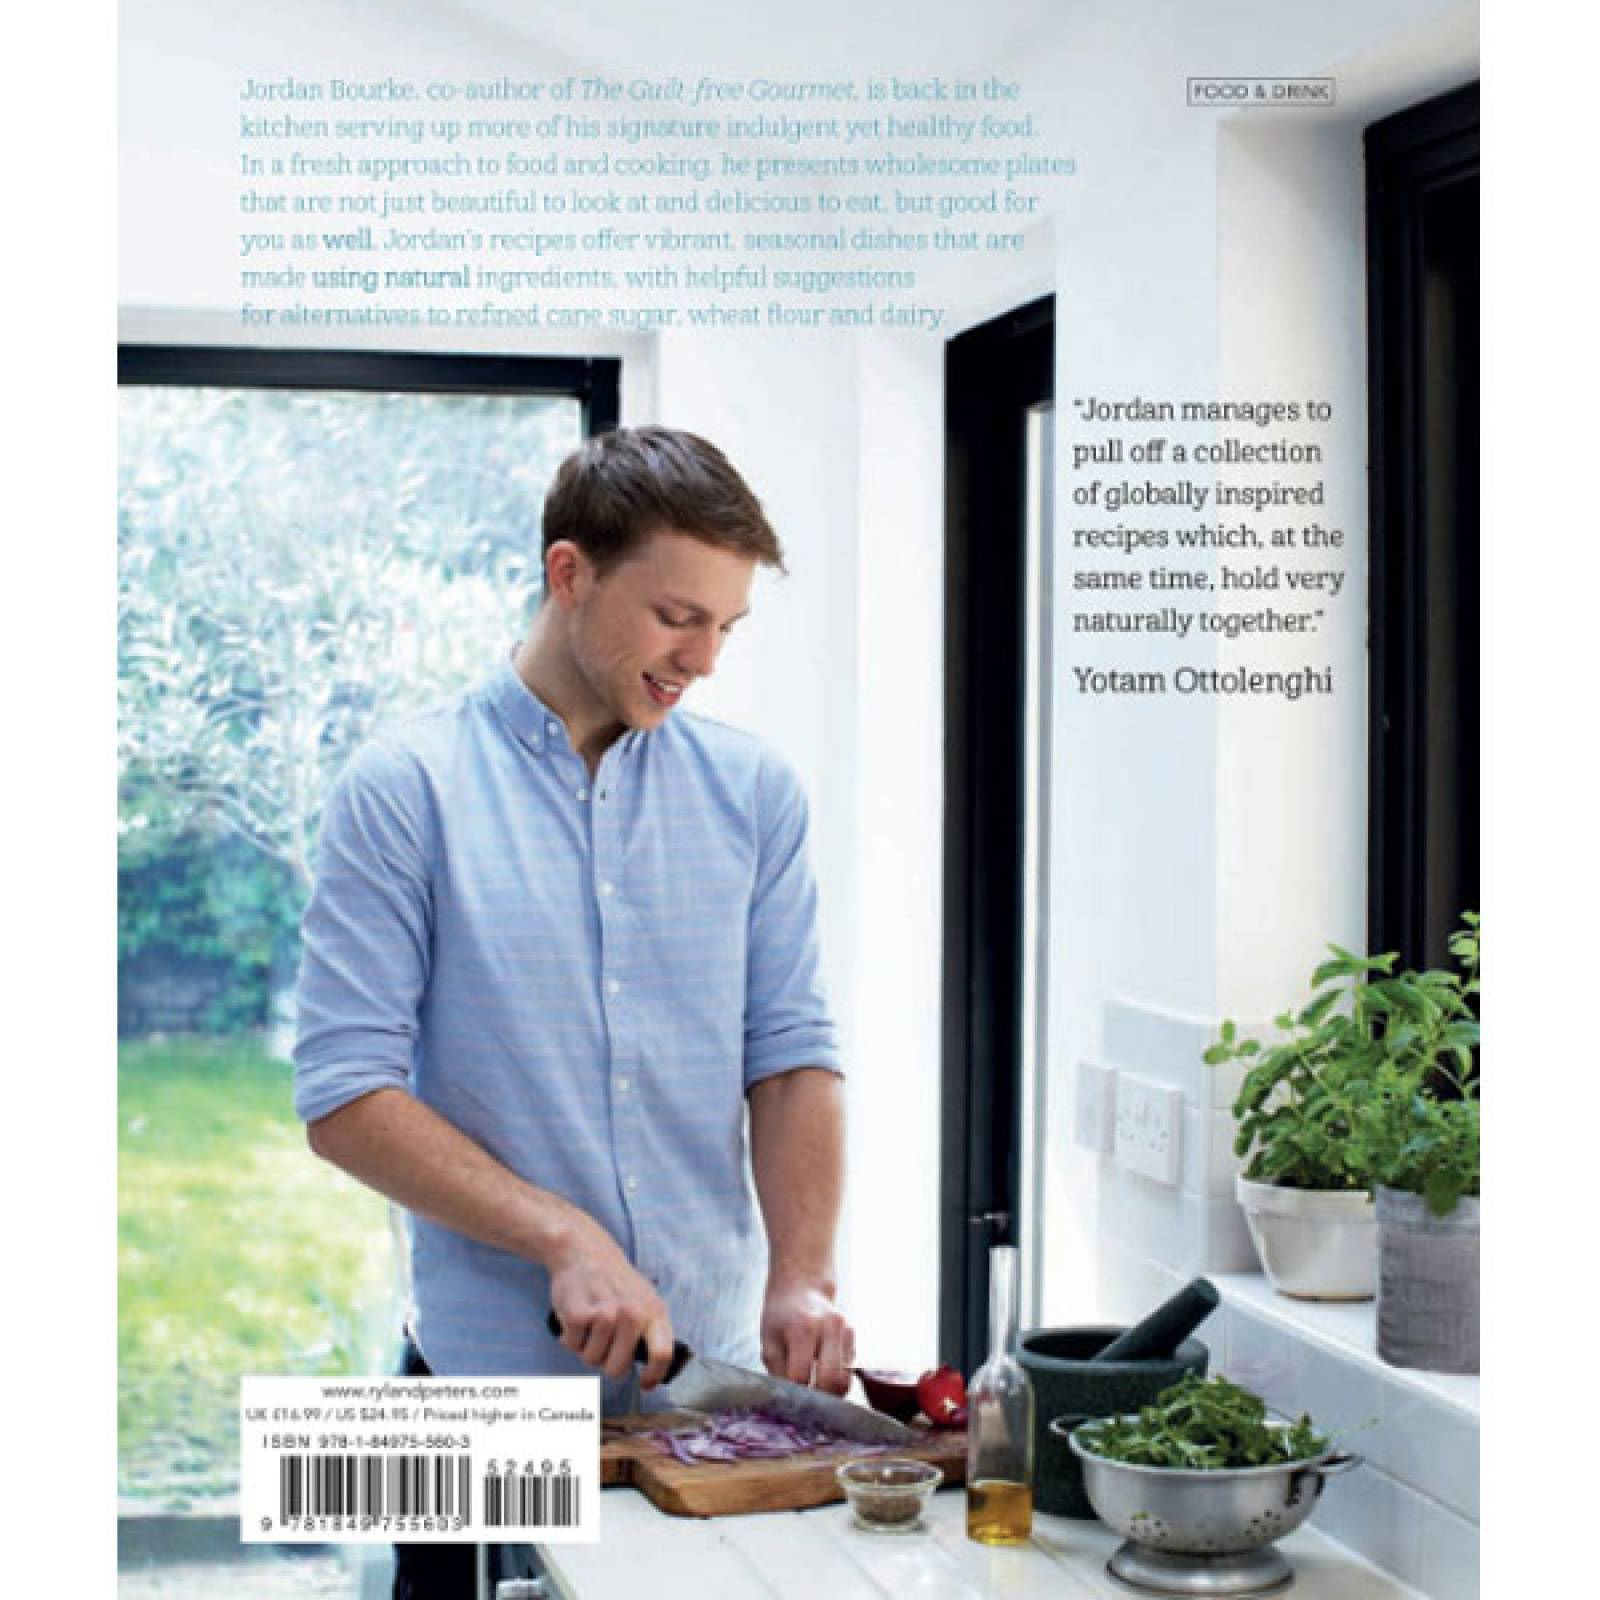 The Natural Food Kitchen Book By Jordan Bourke thumbnails